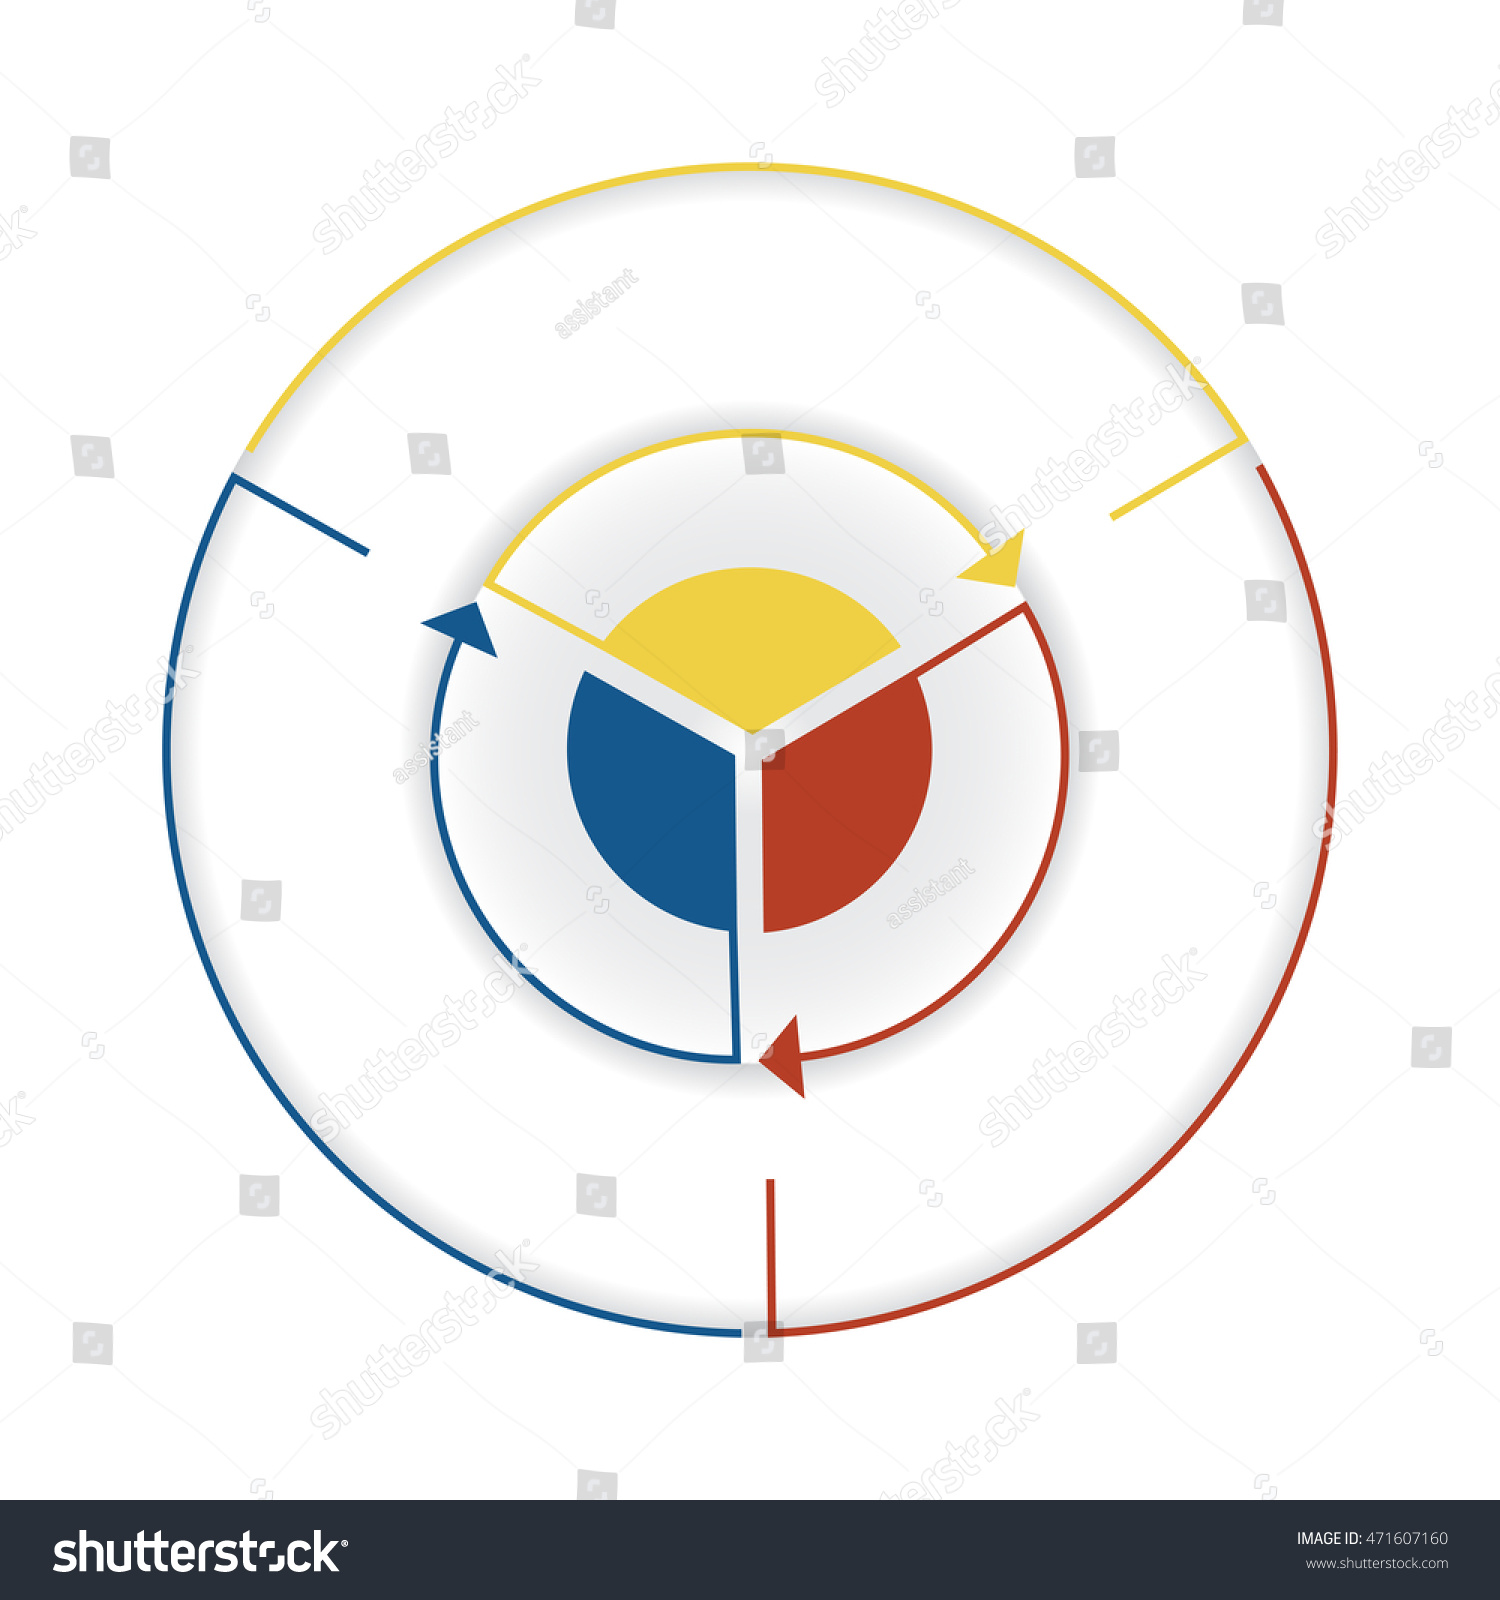 Arrows colourful lines around circle template stock illustration arrows from colourful lines around circle template infographic three position pie chart nvjuhfo Choice Image